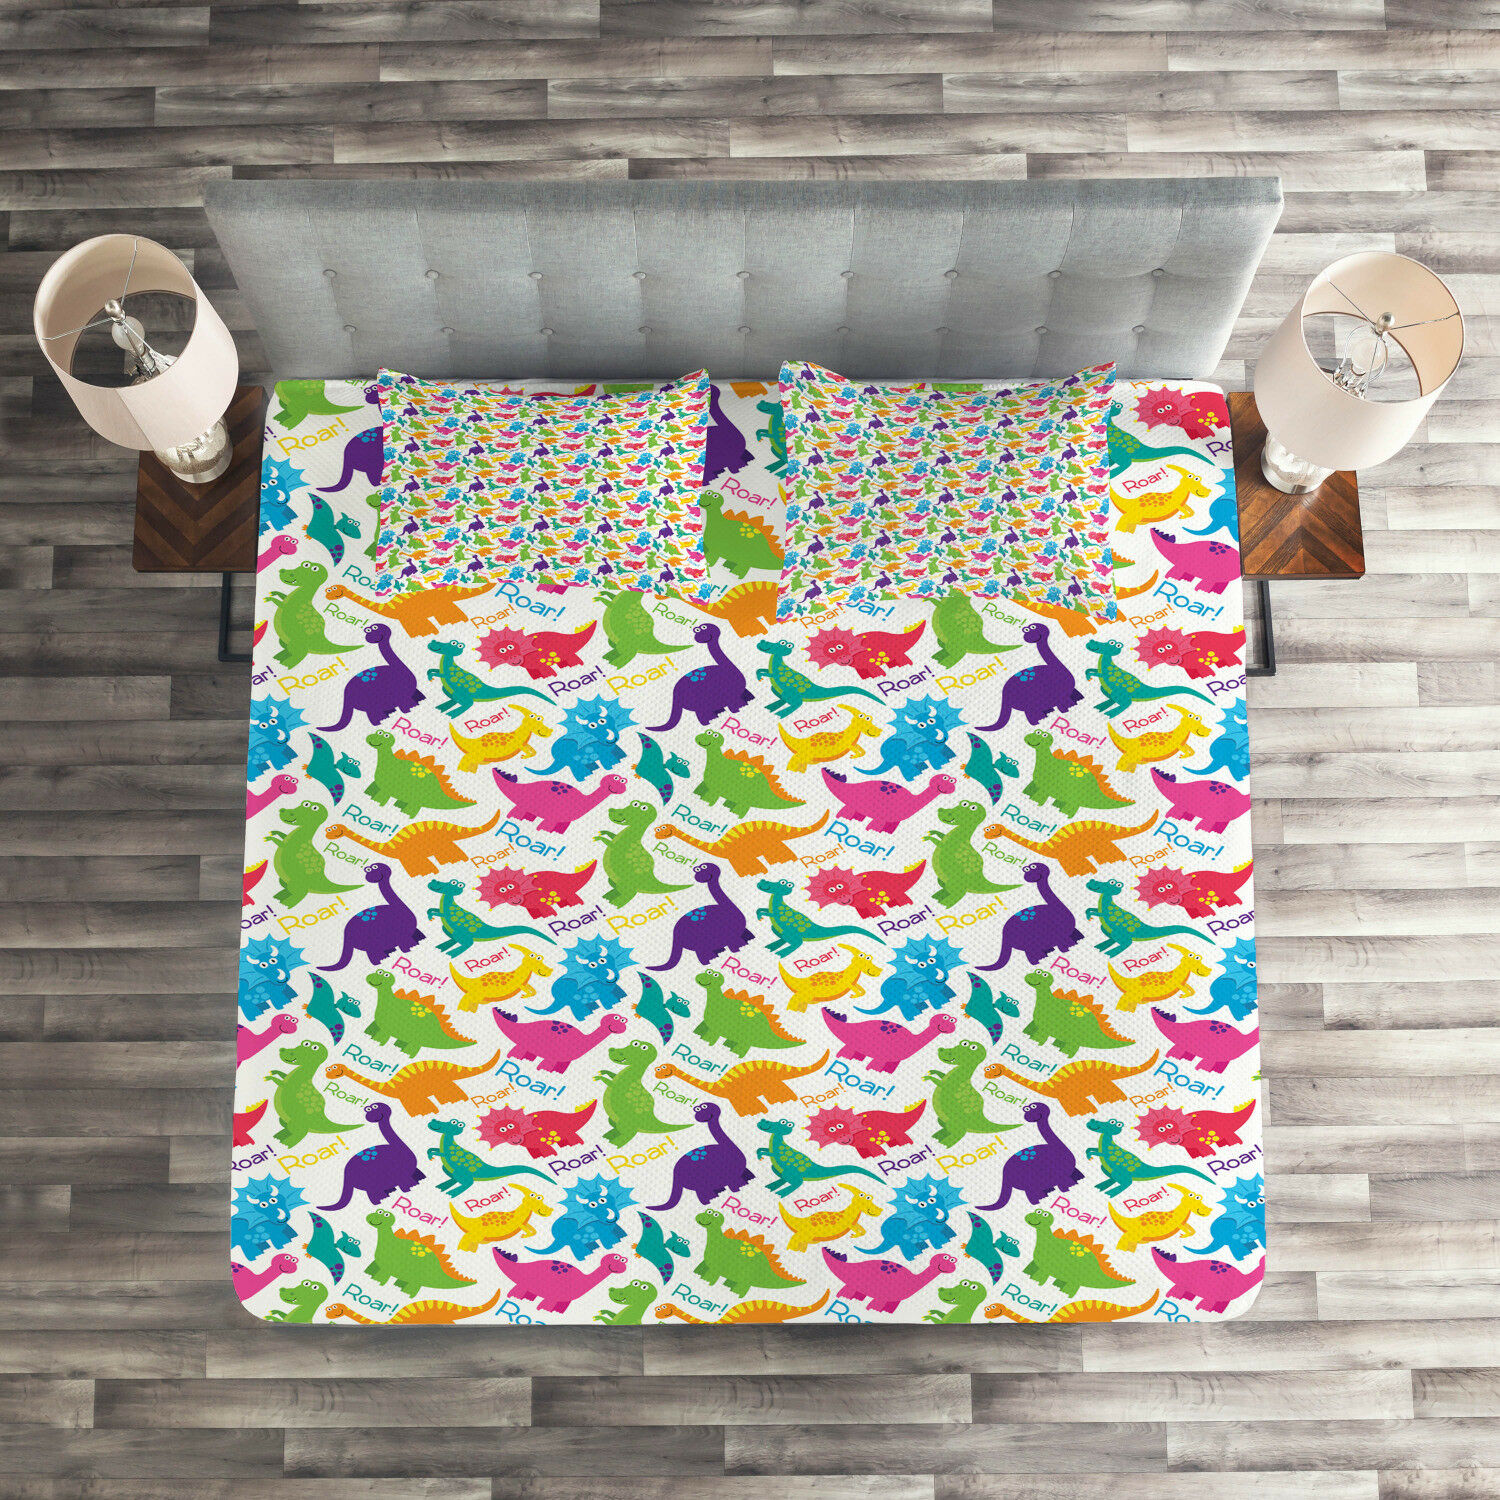 colorful Quilted Coverlet & Pillow Shams Set, Wild Dinosaur Cartoon Print